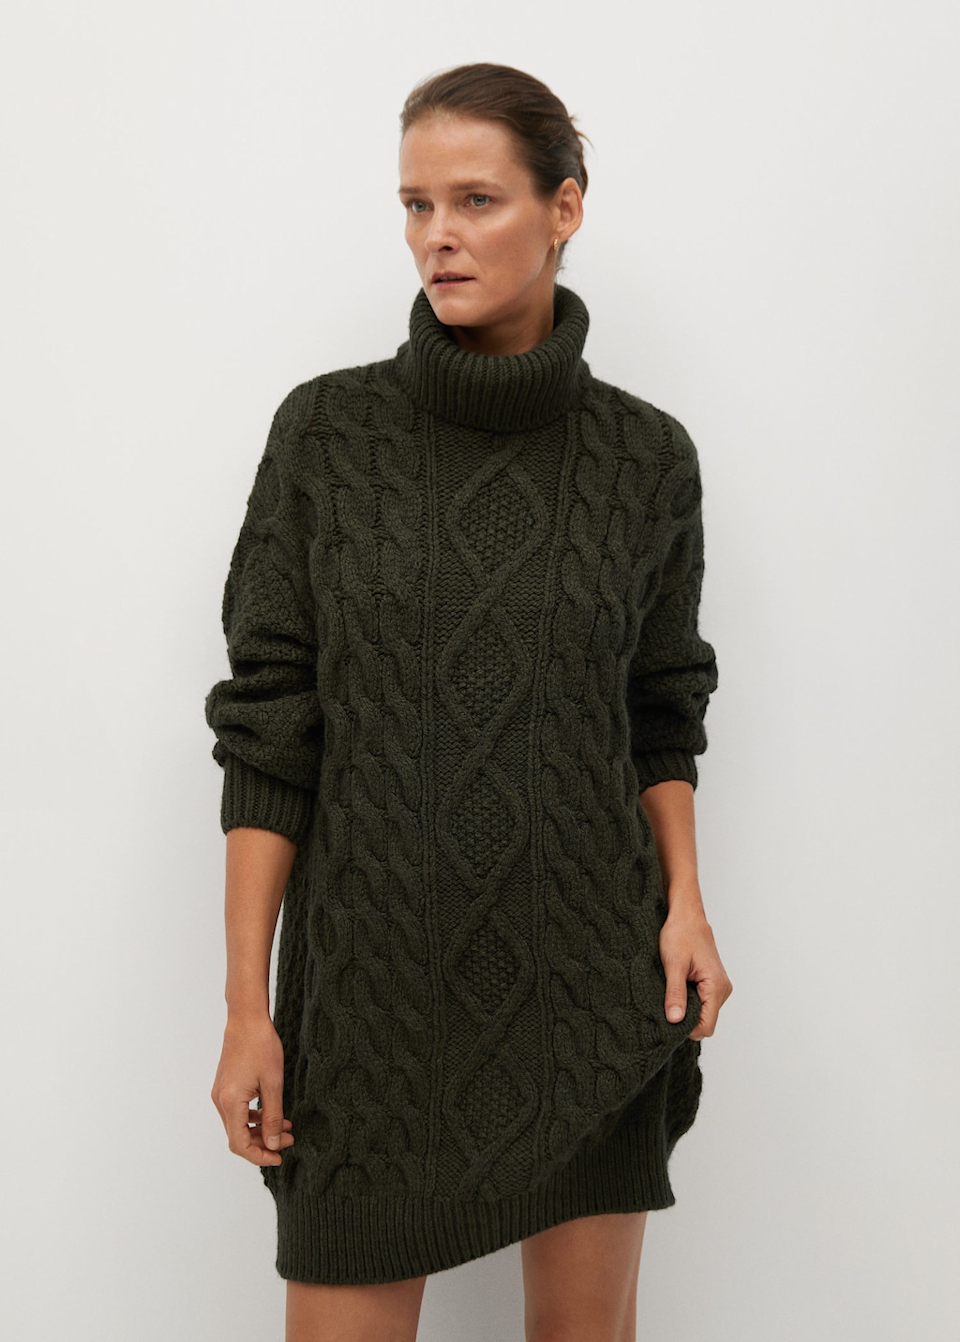 """<br><br><strong>Mango</strong> Knitted Turtleneck Dress, $, available at <a href=""""https://go.skimresources.com/?id=30283X879131&url=https%3A%2F%2Ffave.co%2F2HyG9rb"""" rel=""""nofollow noopener"""" target=""""_blank"""" data-ylk=""""slk:Mango"""" class=""""link rapid-noclick-resp"""">Mango</a>"""